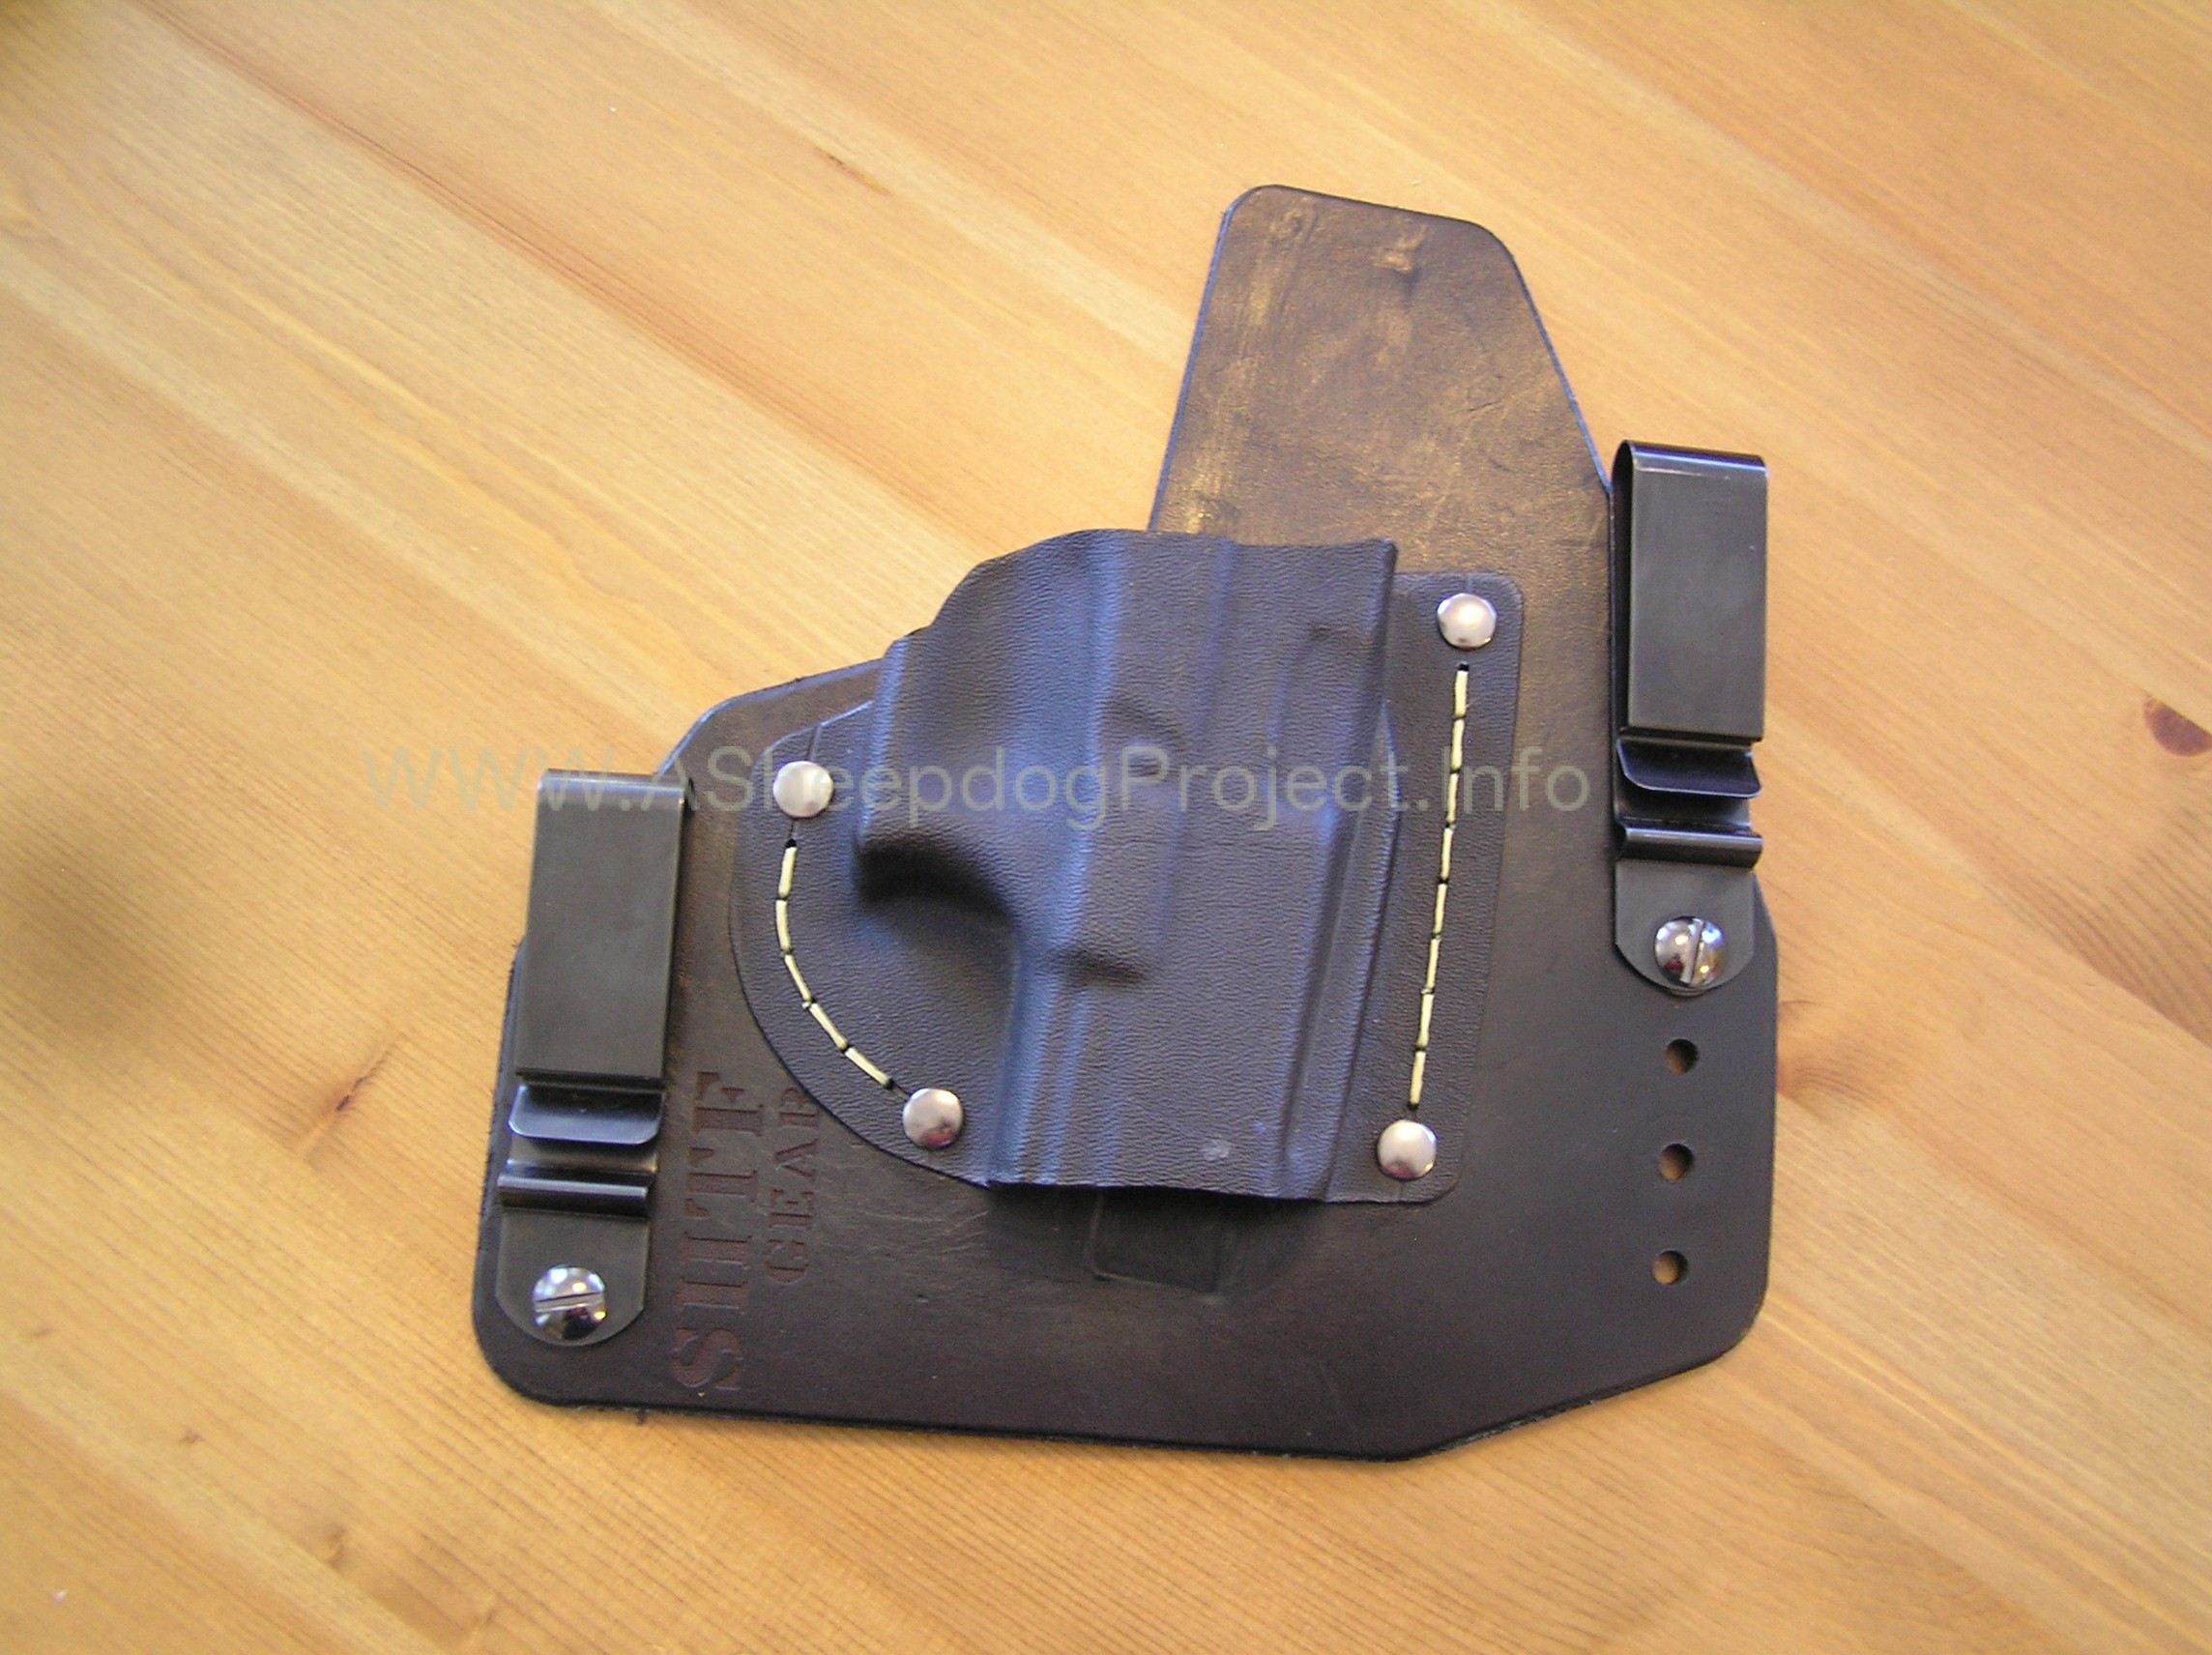 ACE-1 Inside the Waistband holster